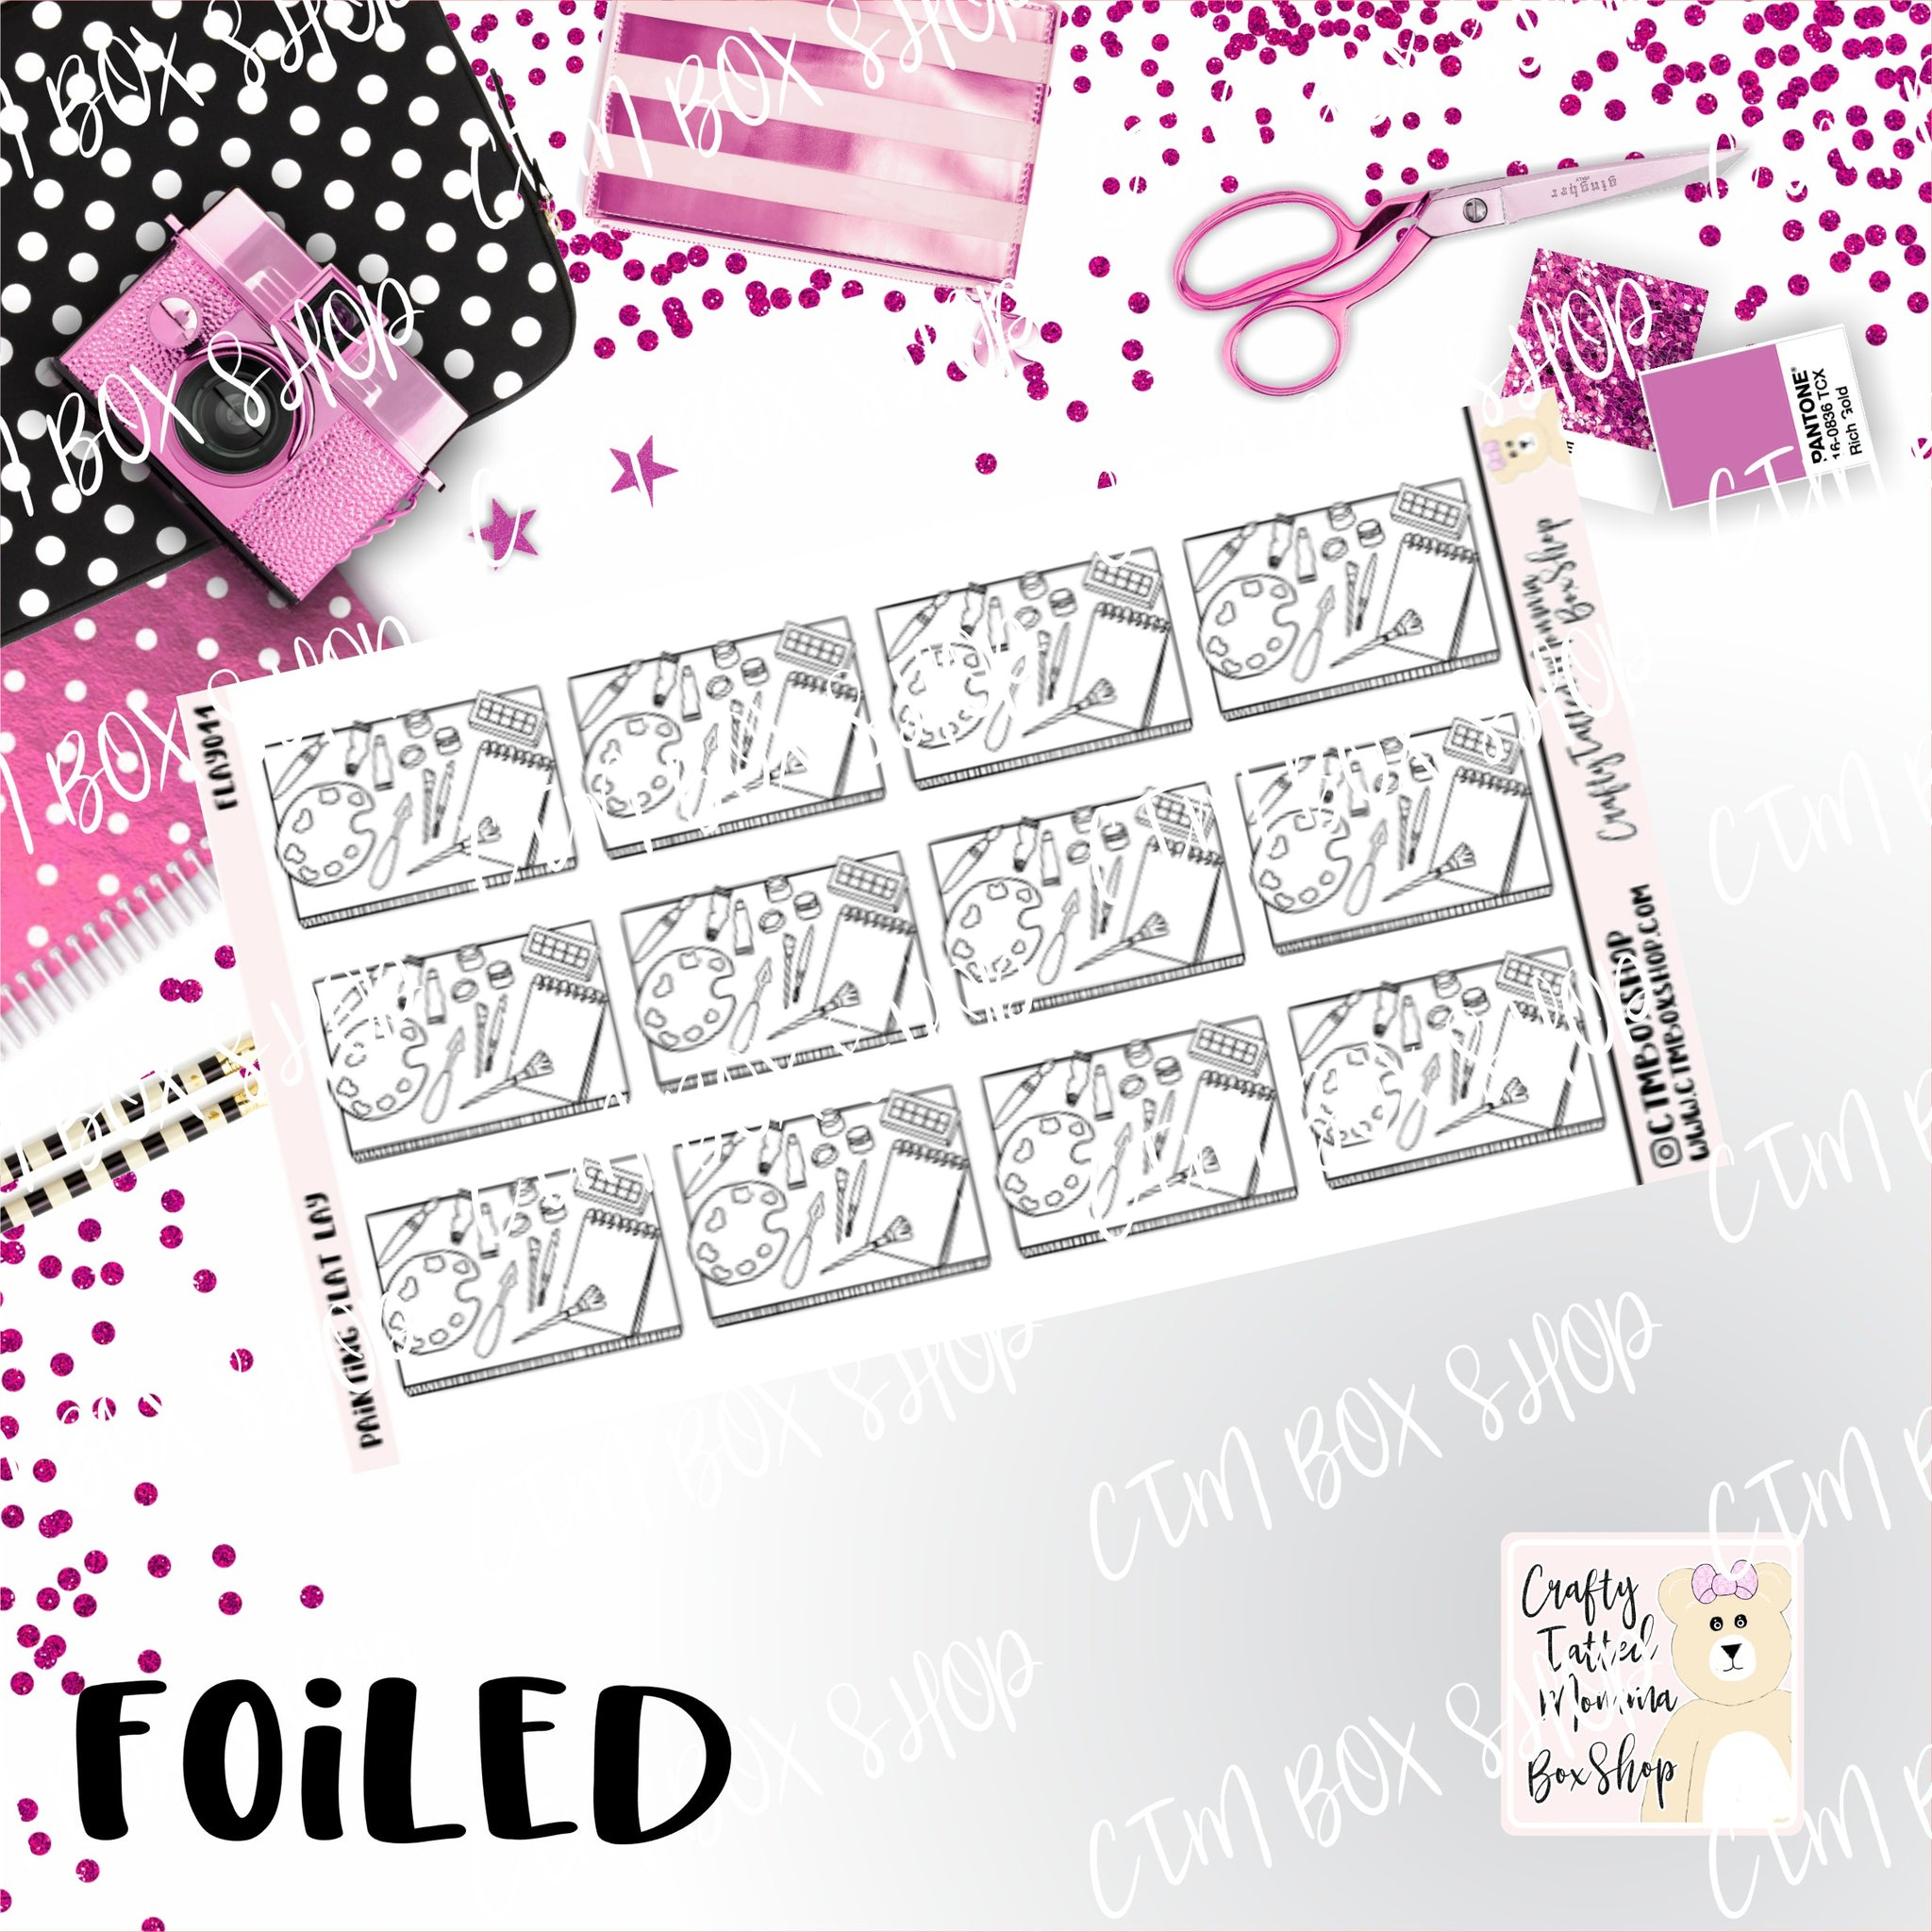 Foiled Painting Flat Lay Planner Stickers  / Painting Stickers / Foiled Stickers / Planner Stickers / Flat Lay Stickers